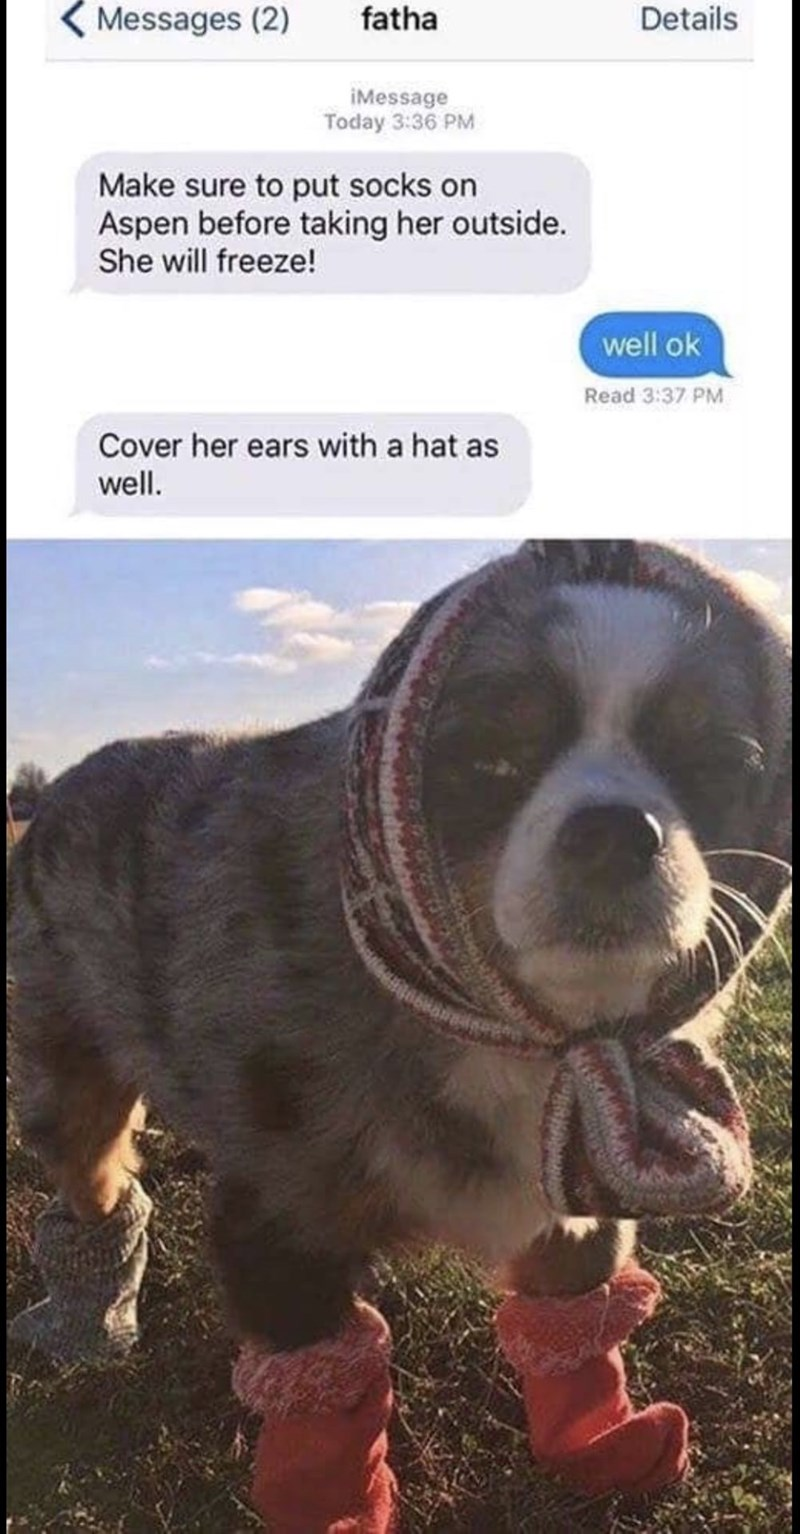 Dog breed - Messages (2) fatha Details iMessage Today 3:36 PM Make sure to put socks on Aspen before taking her outside. She will freeze! well ok Read 3:37 PM Cover her ears with a hat as well.